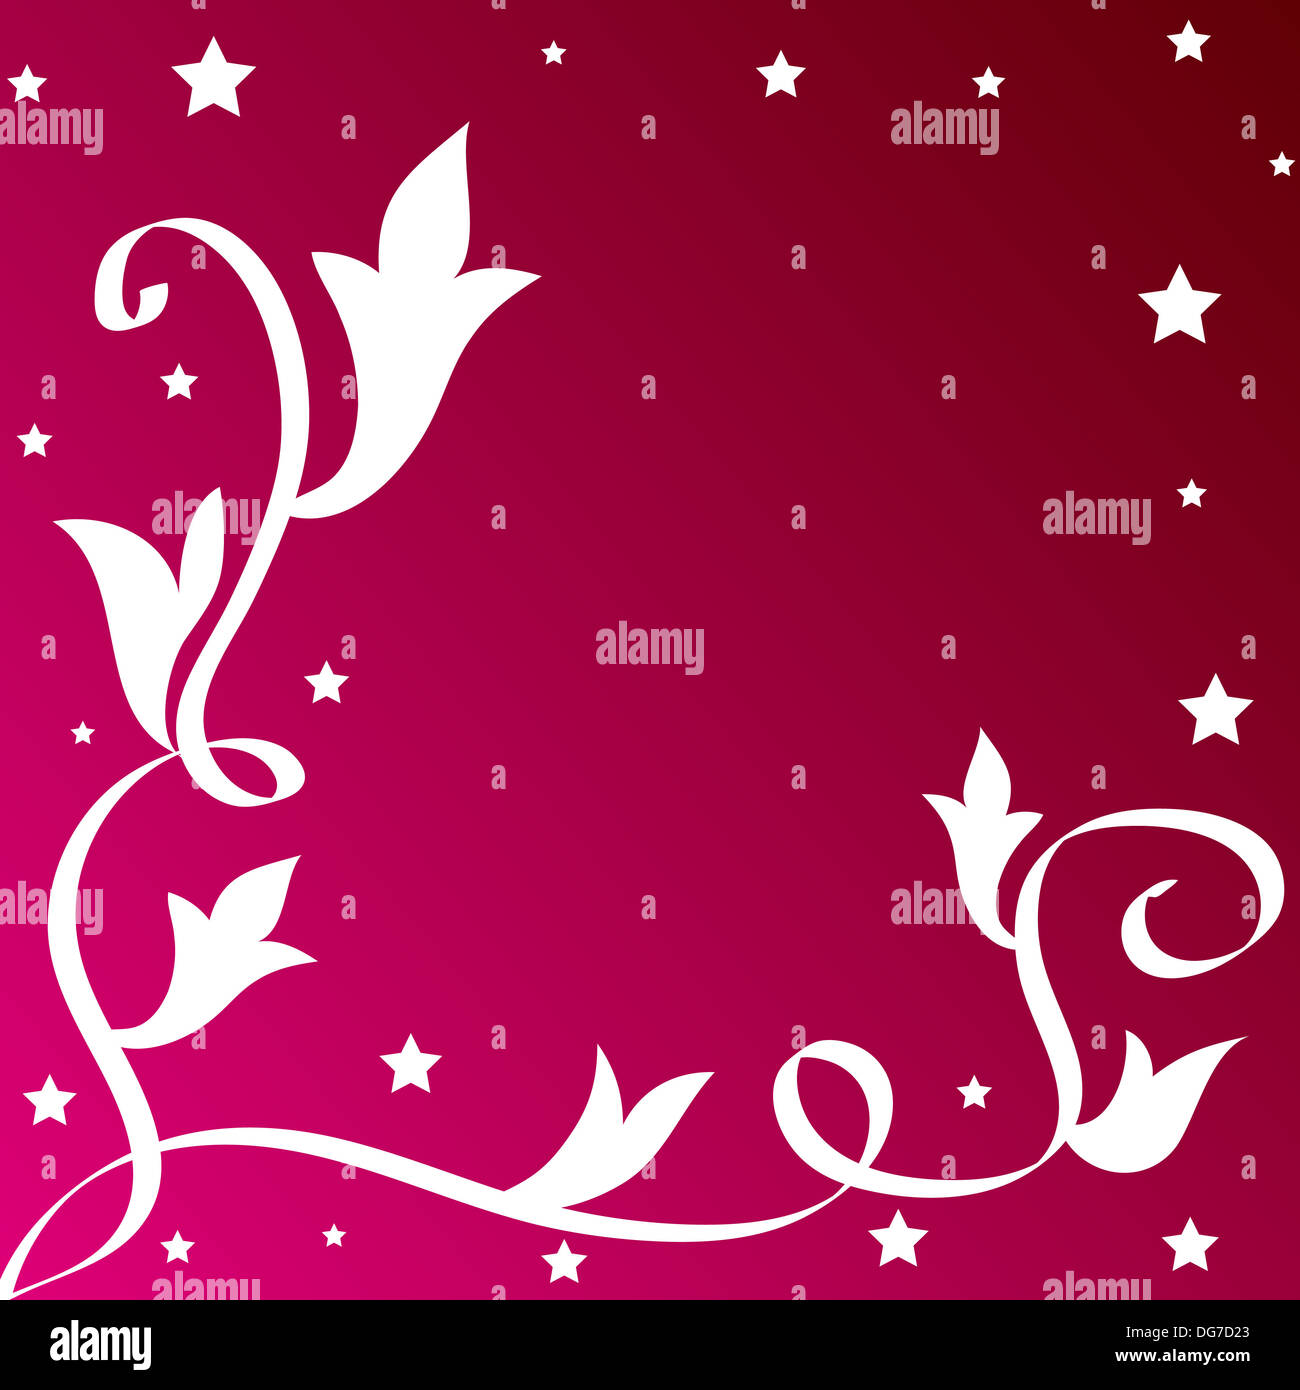 Leaves and stars border on pink Stock Photo